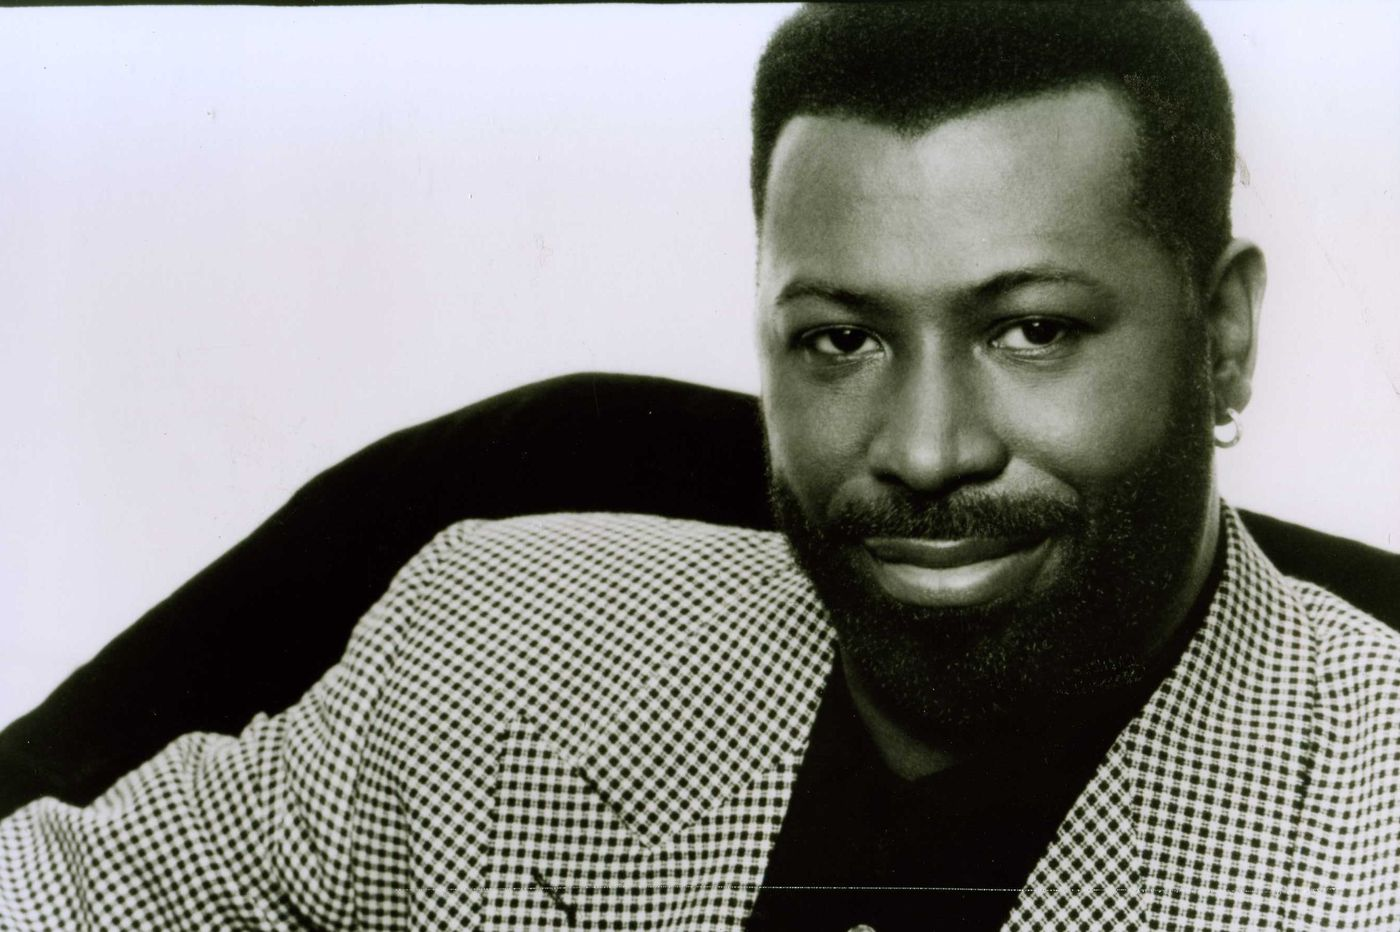 Philly soul great Teddy Pendergrass is the subject of an illuminating new film